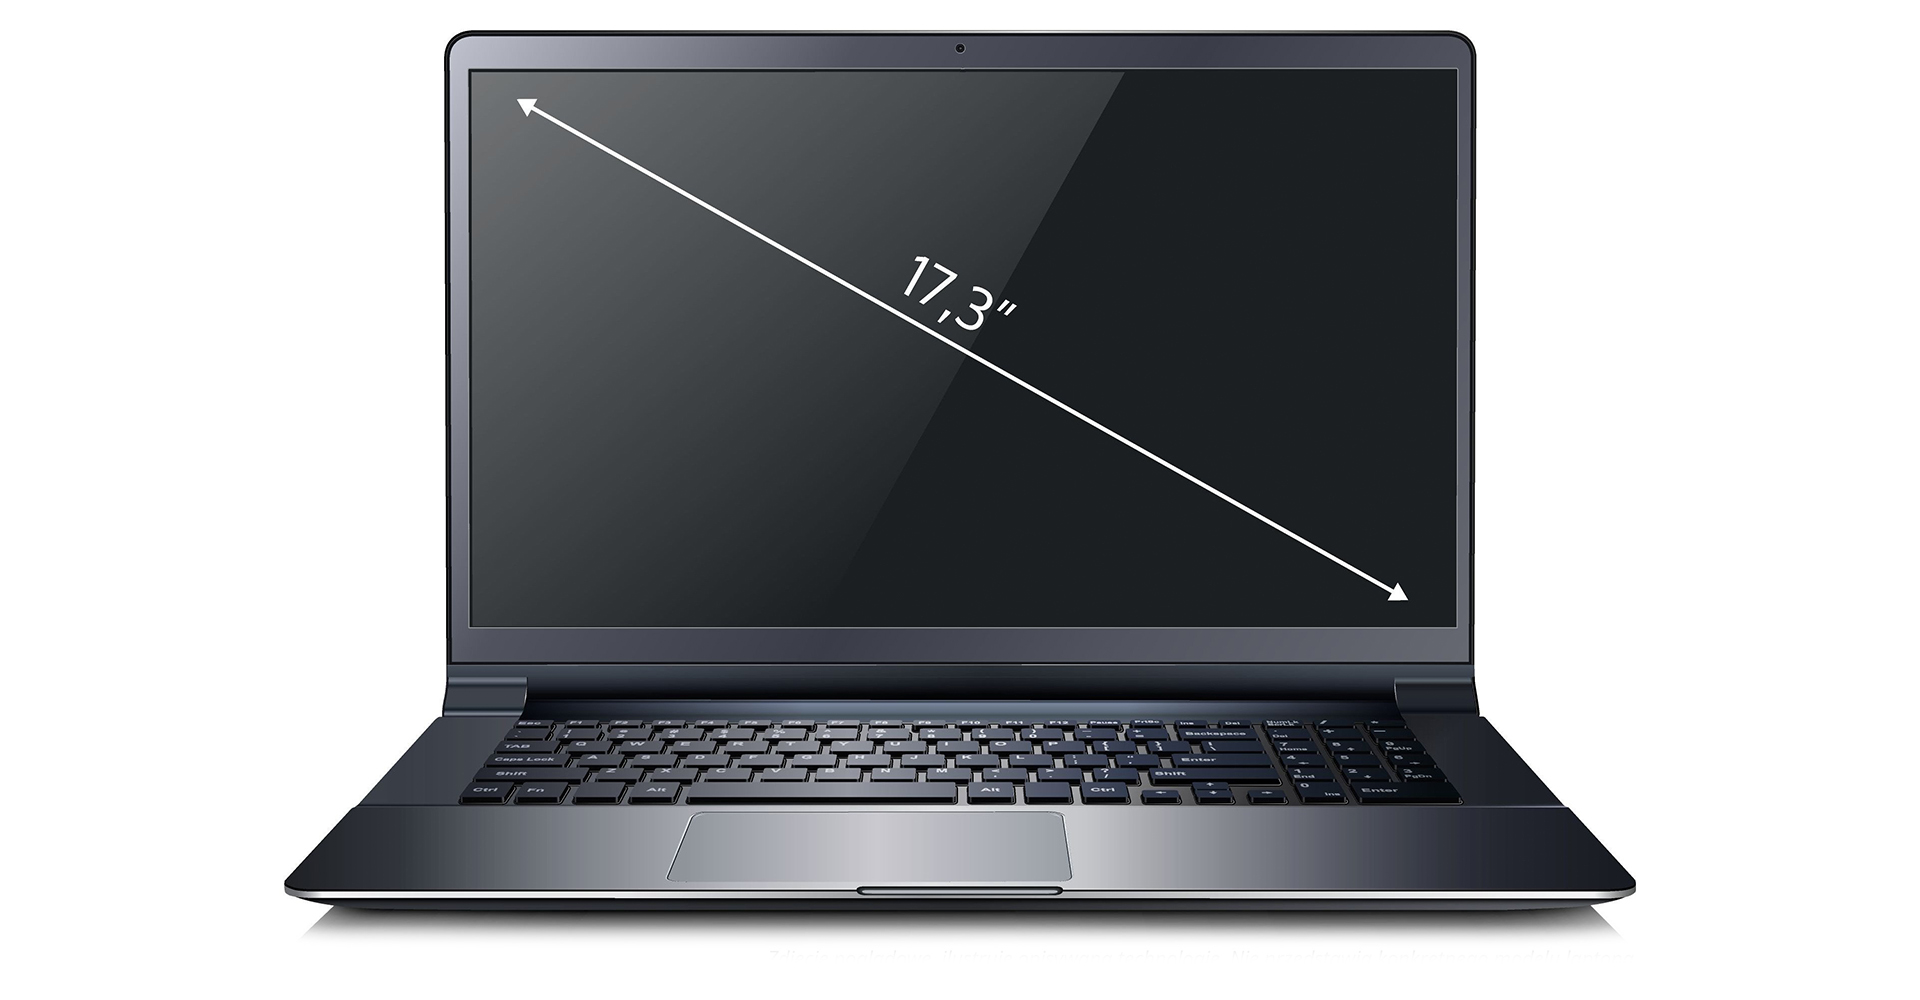 Lenovo ThinkPad P72 (20MB000FPB)                             17.3 collas pa diagonāli